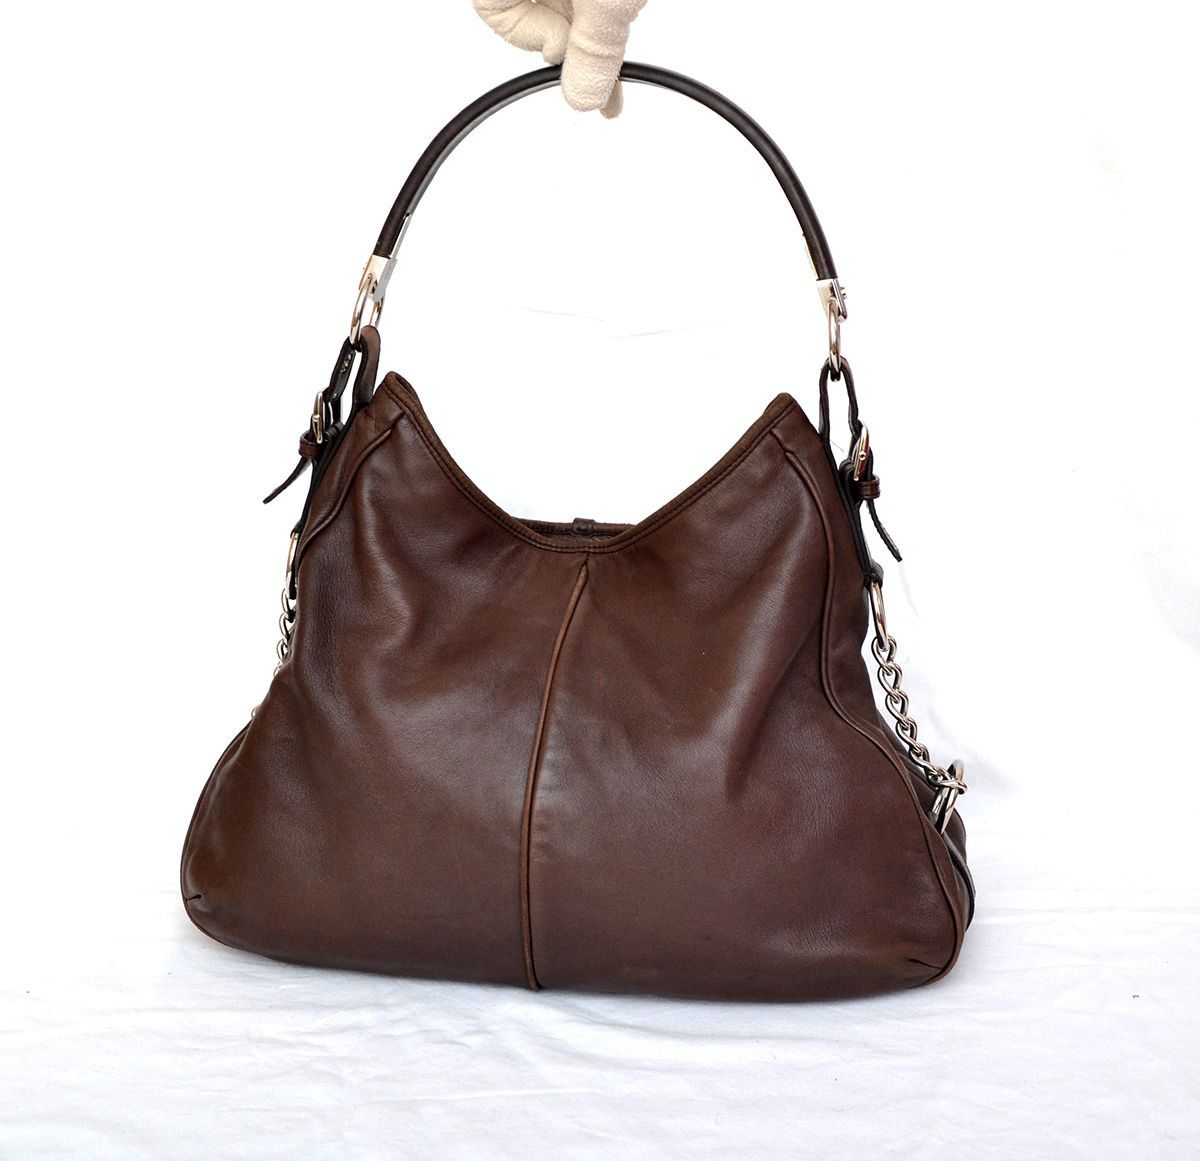 8c95196deaa0 Sergio Rossi Soft Leather - Chain Shoulder Bag Hobo by MySunnyStore on Etsy